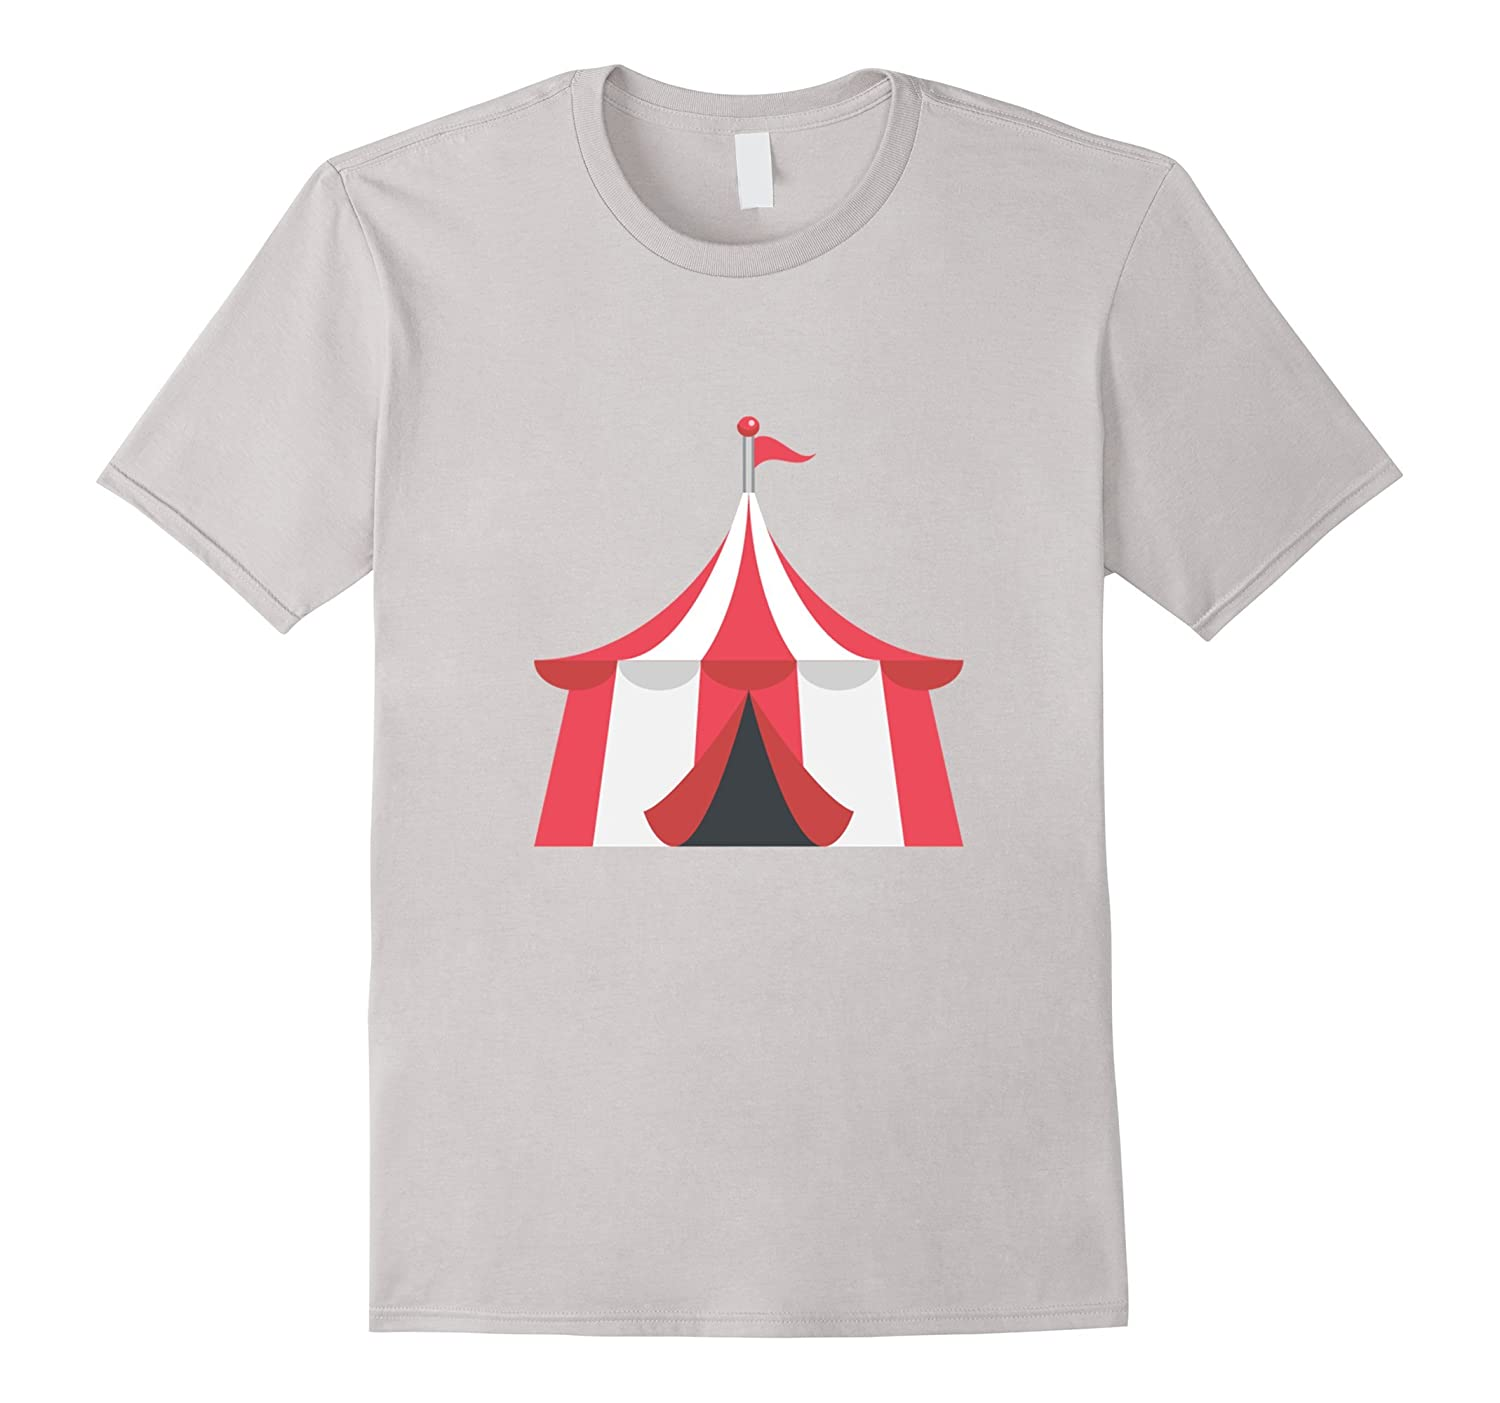 Circus Tent Emoji T Shirt Clown Carnival Birthday Party TH